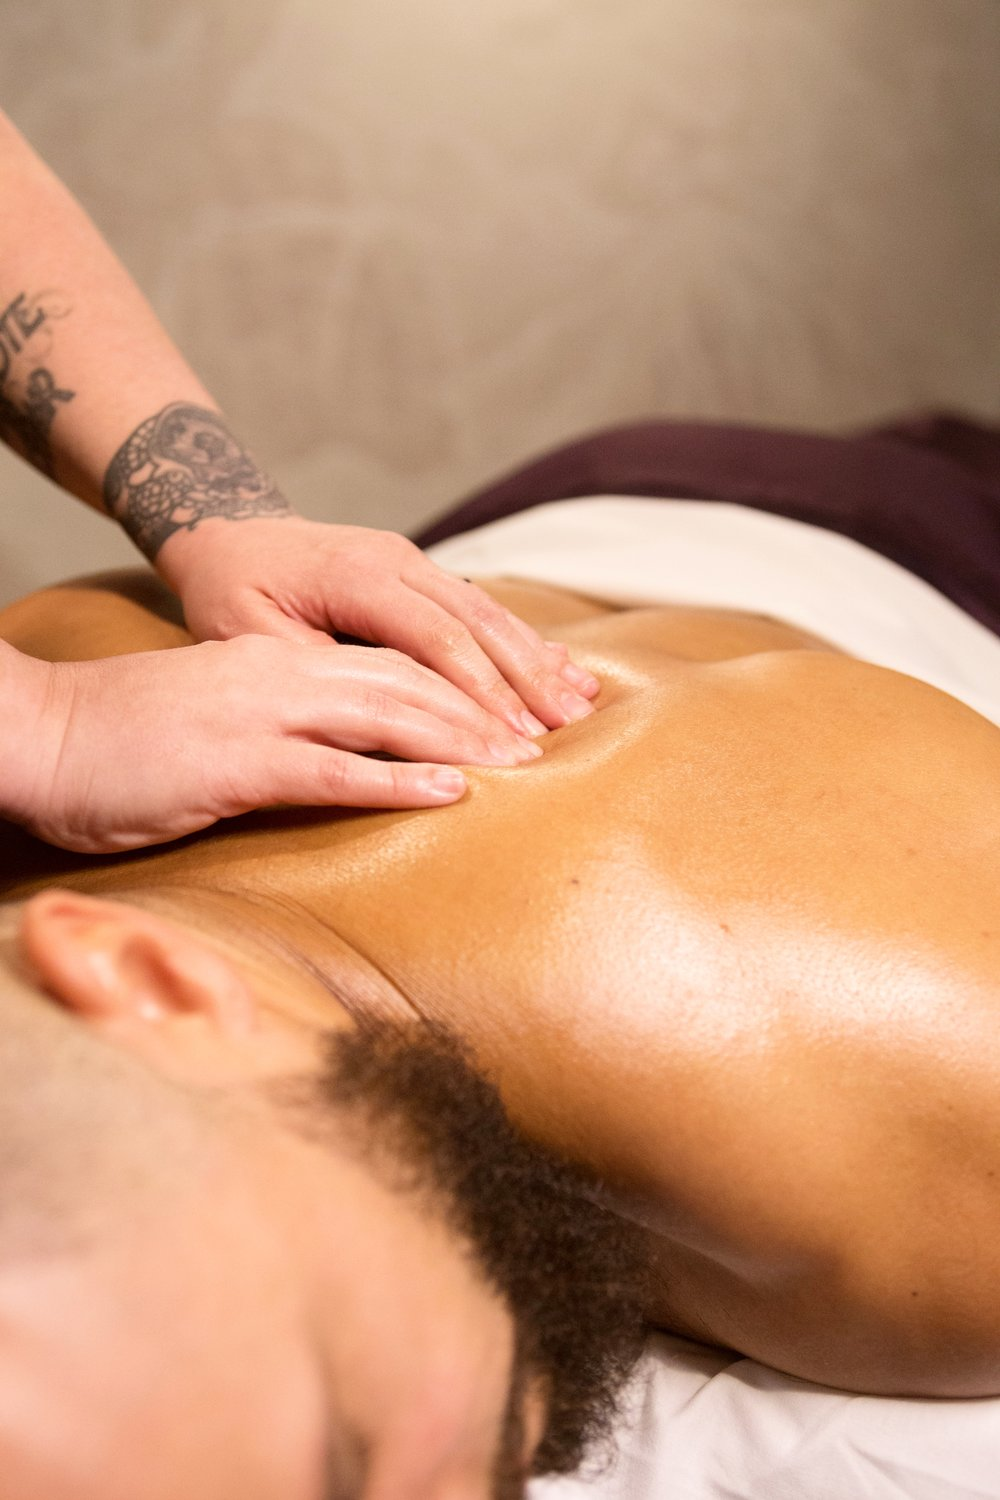 DEEP TISSUE MASSAGE   Strong, steady pressure is applied to reach deep muscles within your body.  30-minute session: $40  45-minute session: $55  60-minute session: $70  90-minute session: $90  120-minute session: $133